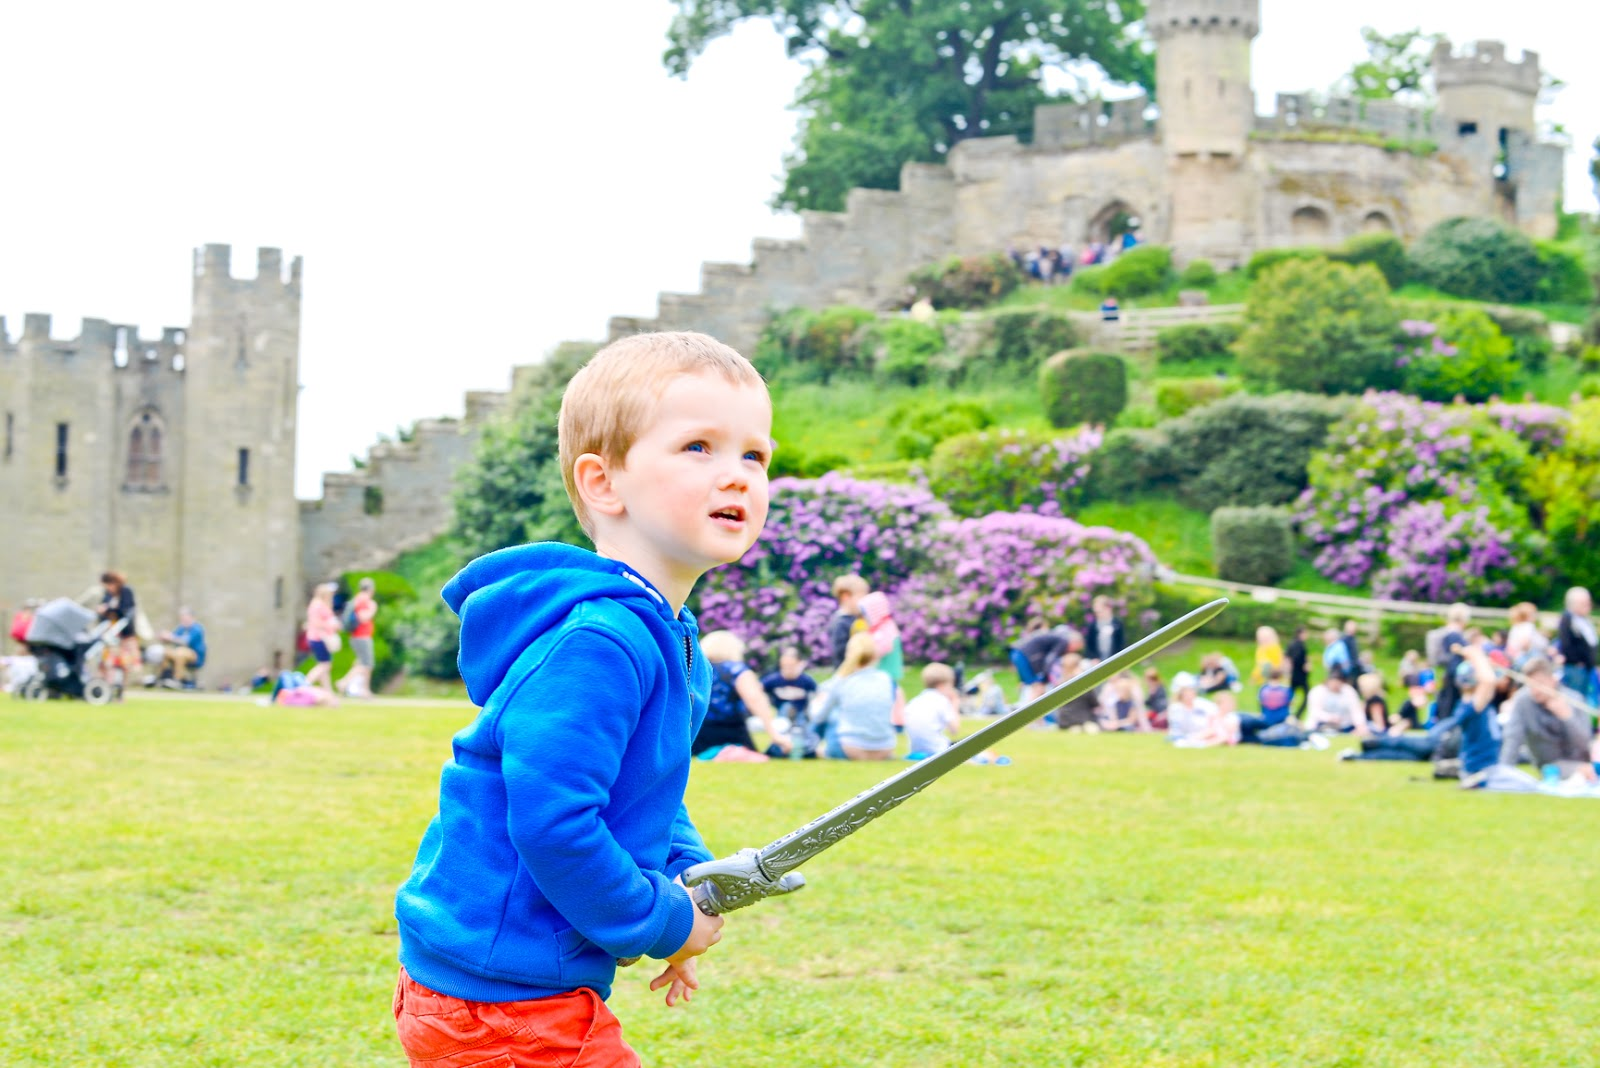 wars of the roses live, Medieval Glamping At Warwick Castle, Warwick Castle, What to see at Warwick Castle, Staying at Warwick Castle,